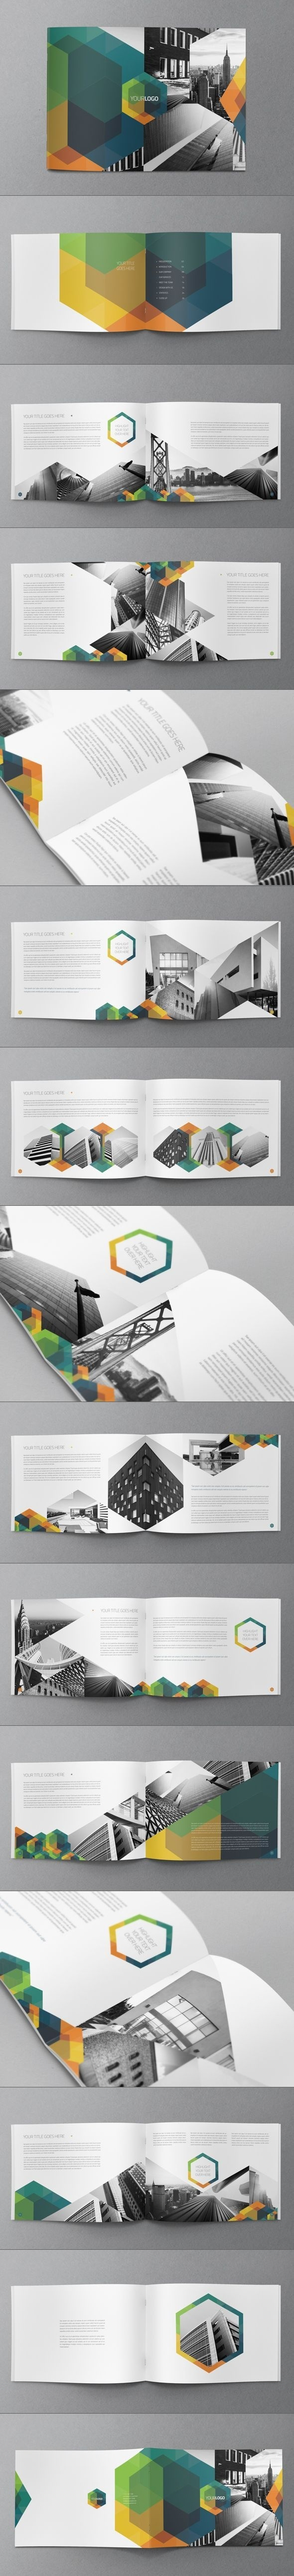 Hexo Brochure Design by Abra Design | Graphic Design #branding #print #design #graphic #brochure